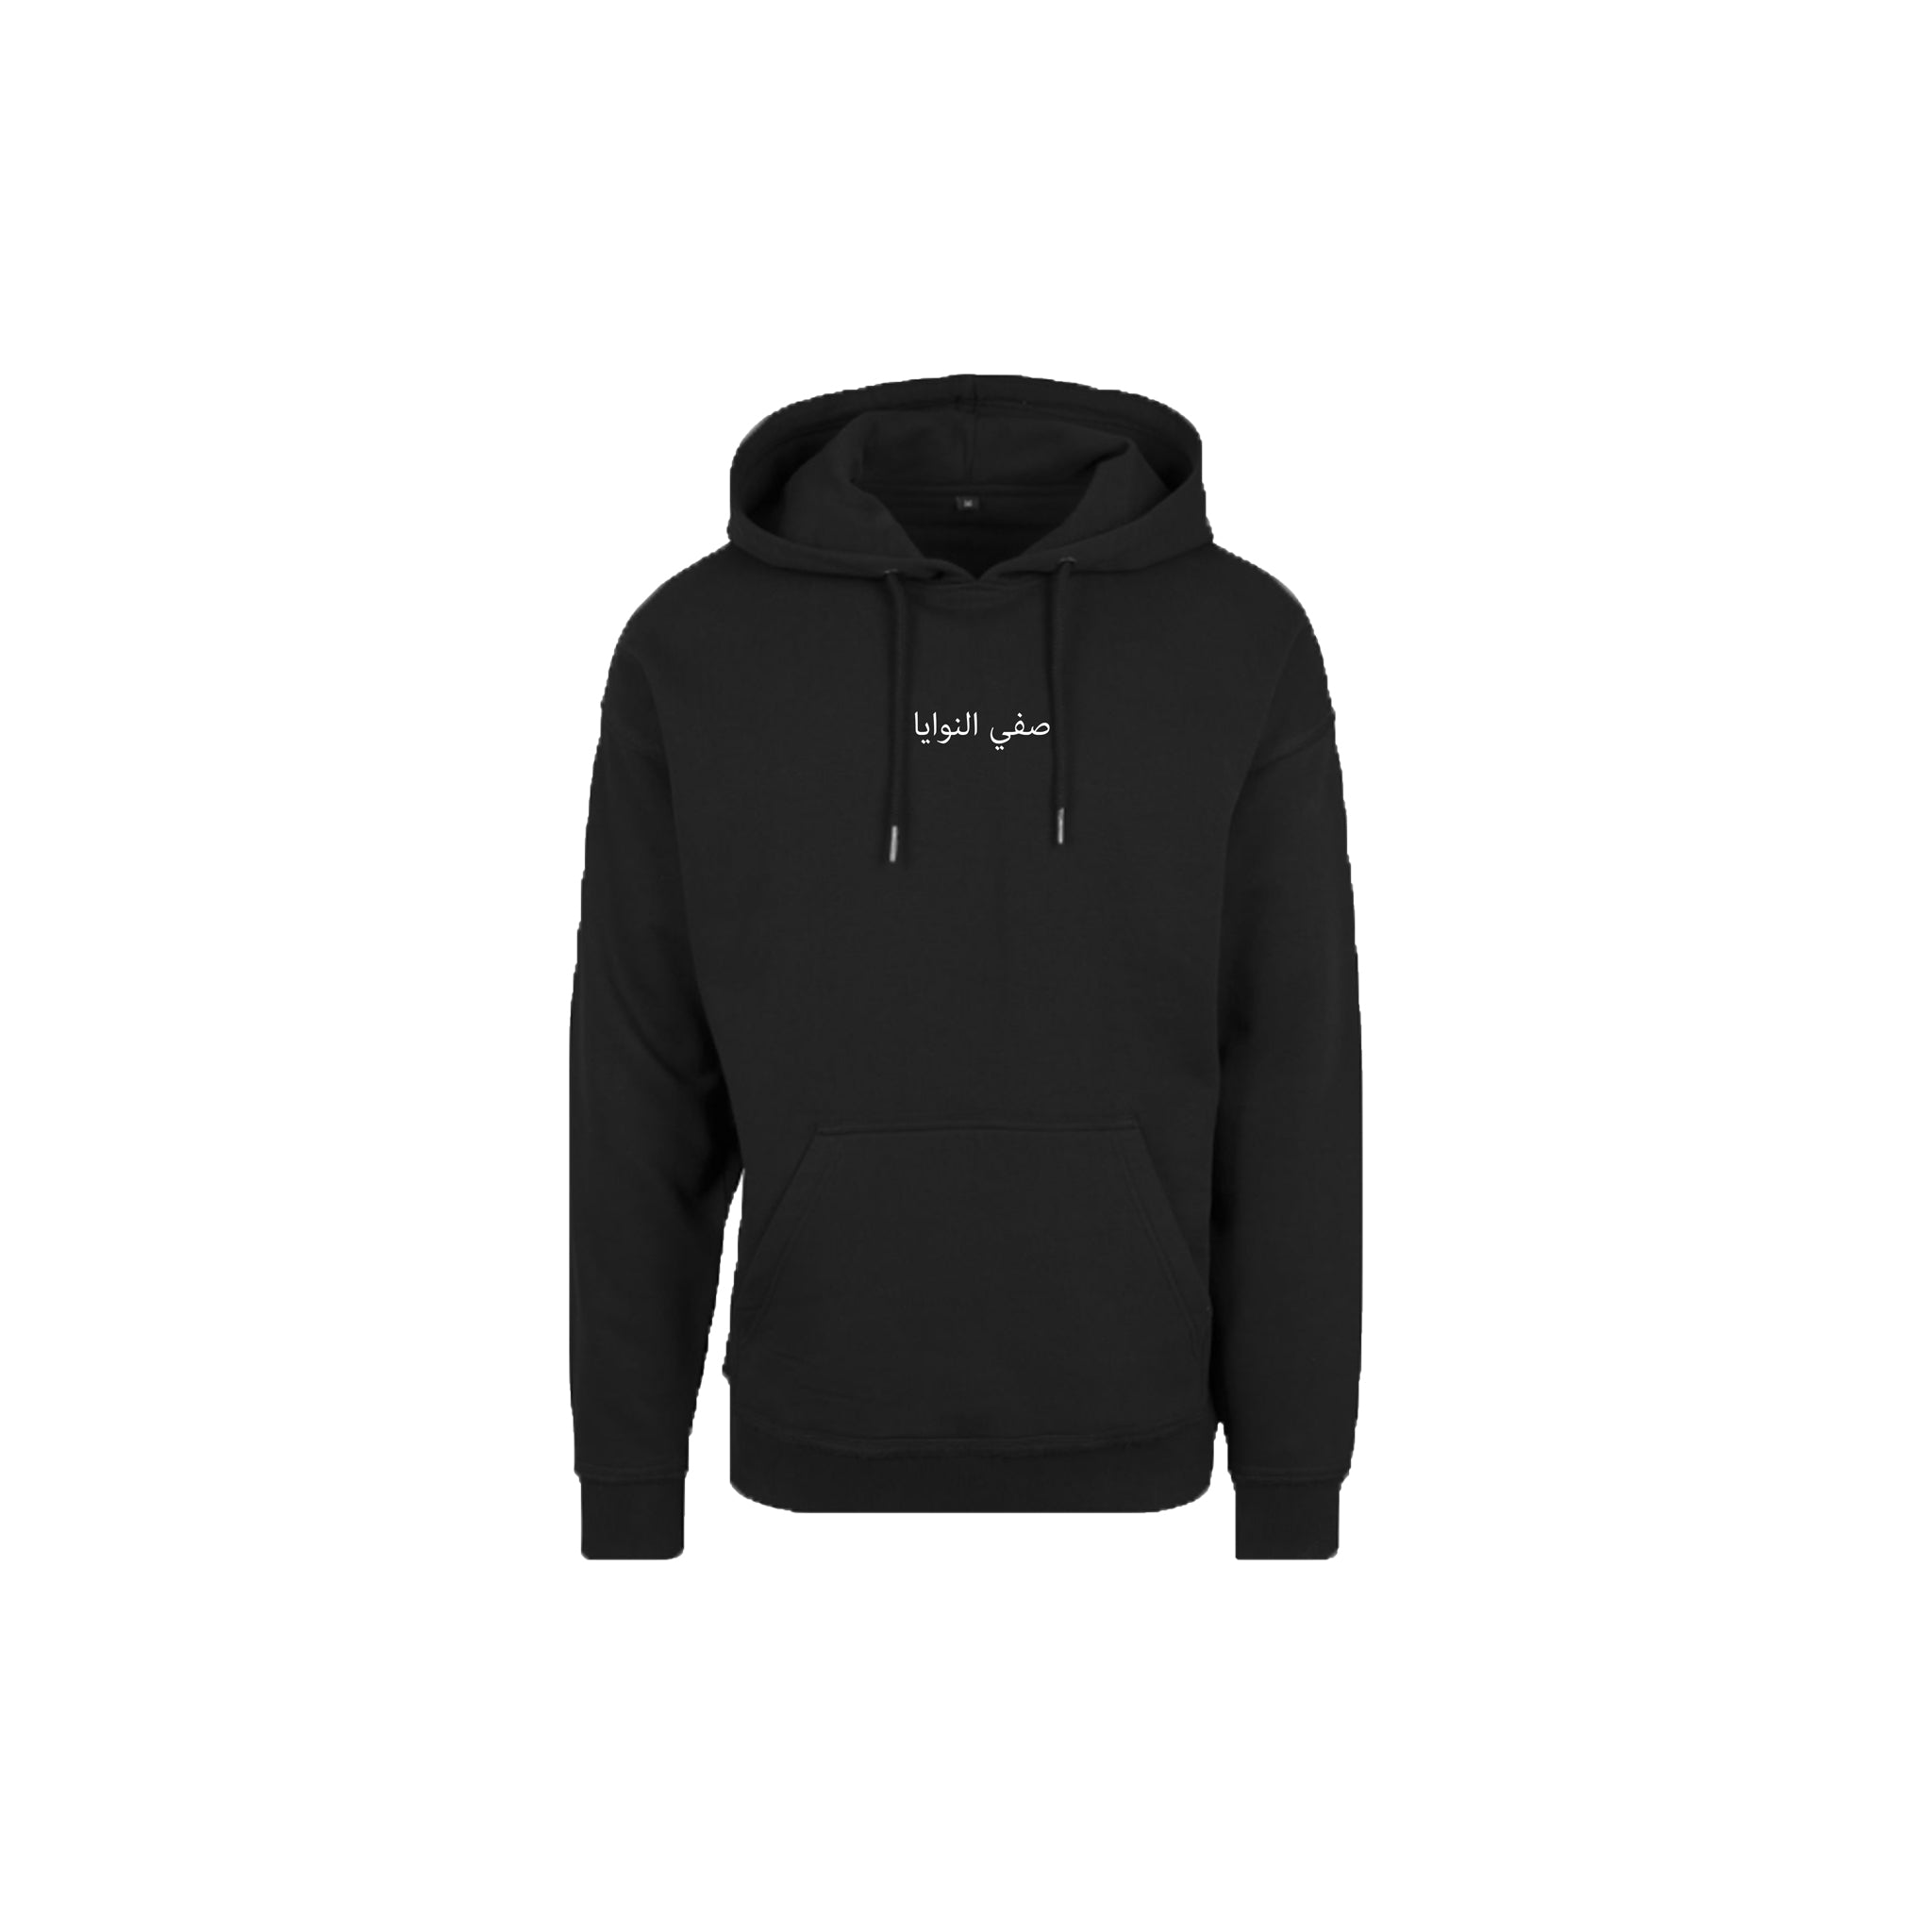 PURIFY THE INTENTION HOODIE